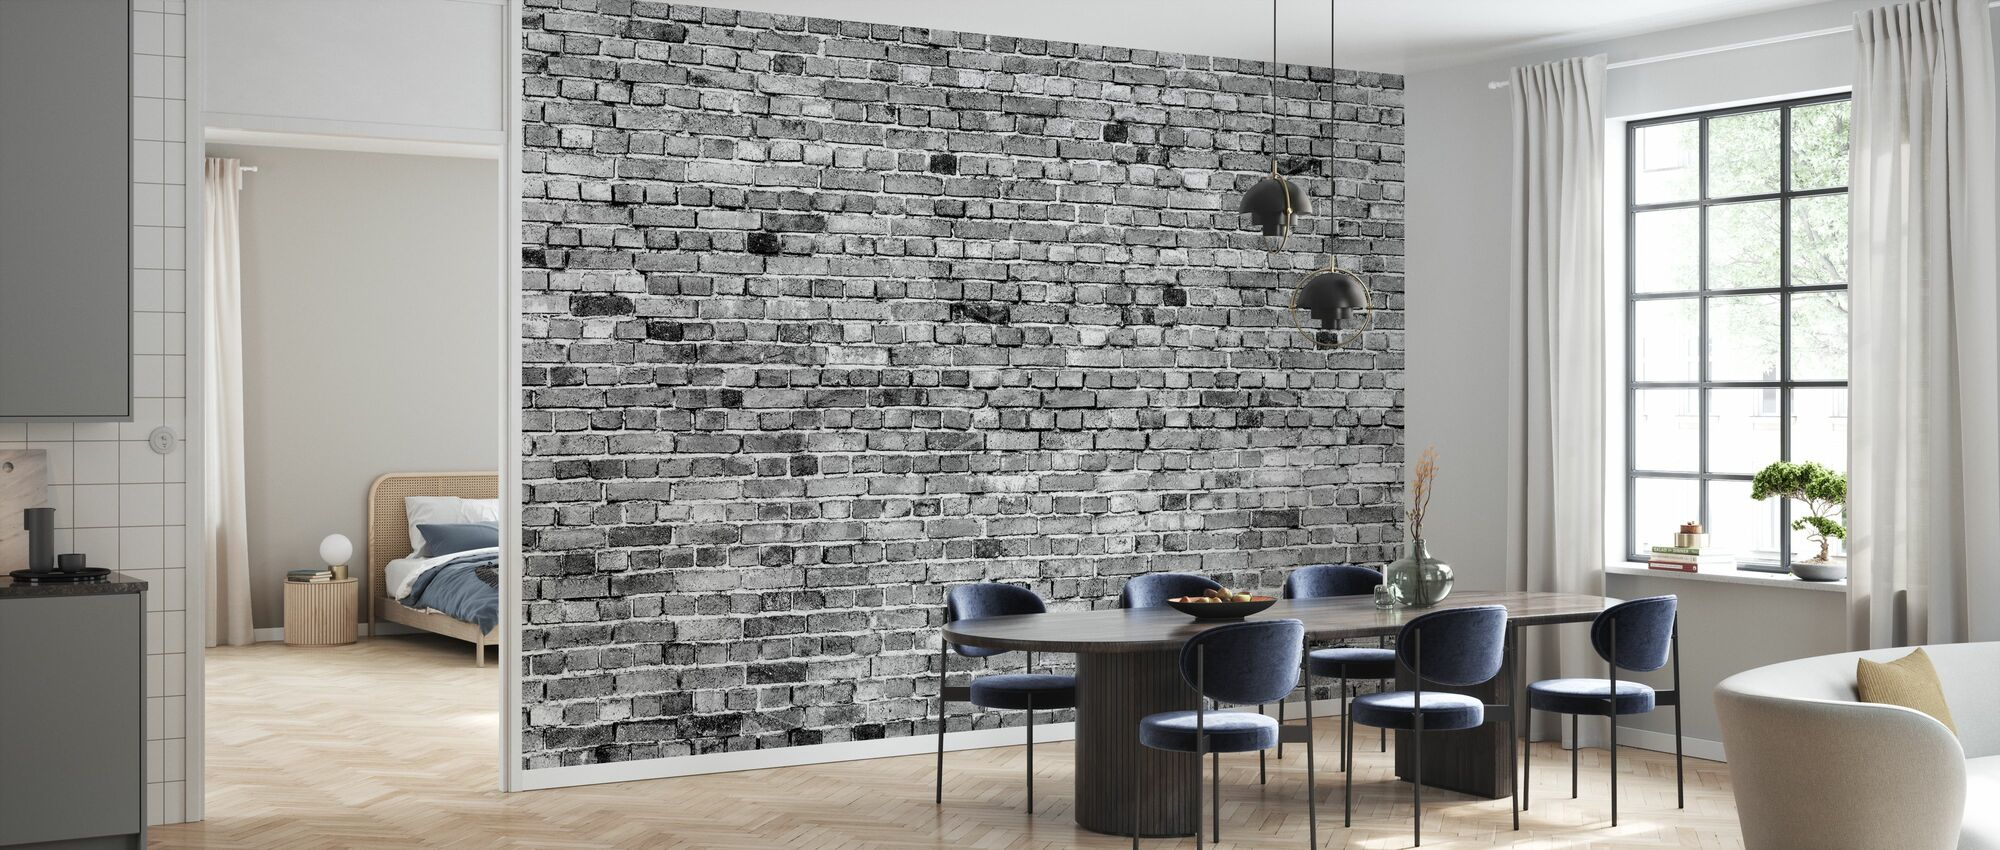 Stockholm Brick Wall - Black and White - Wallpaper - Kitchen